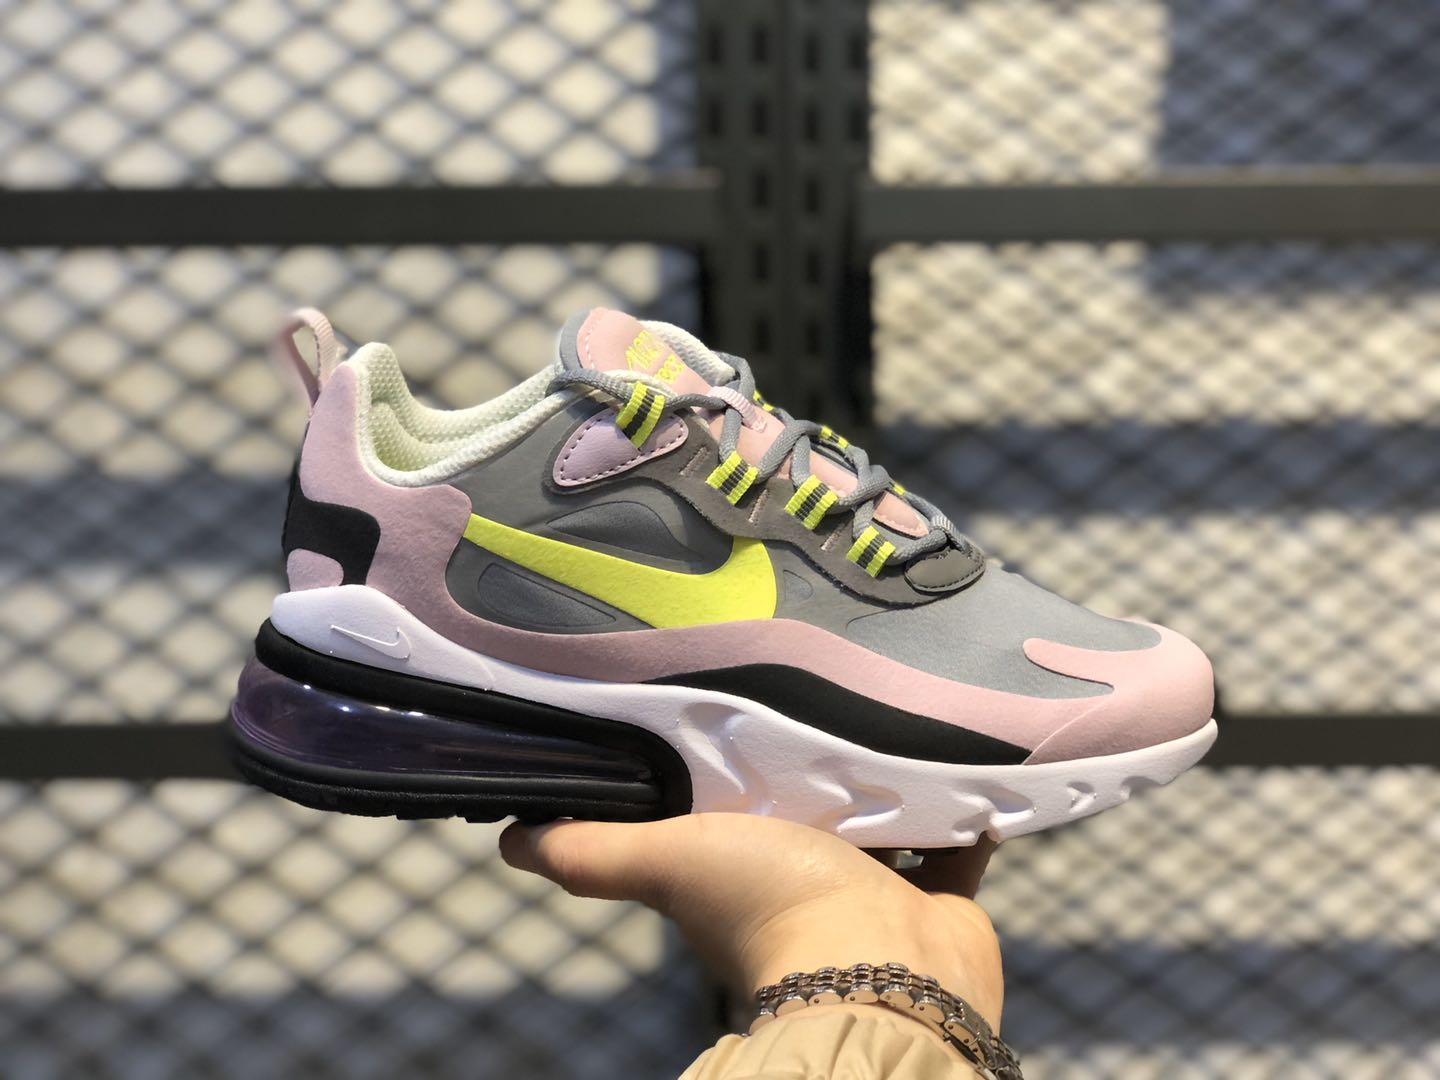 Nike Air Max 270 React GS Particle Grey On Sale BQ0103-010